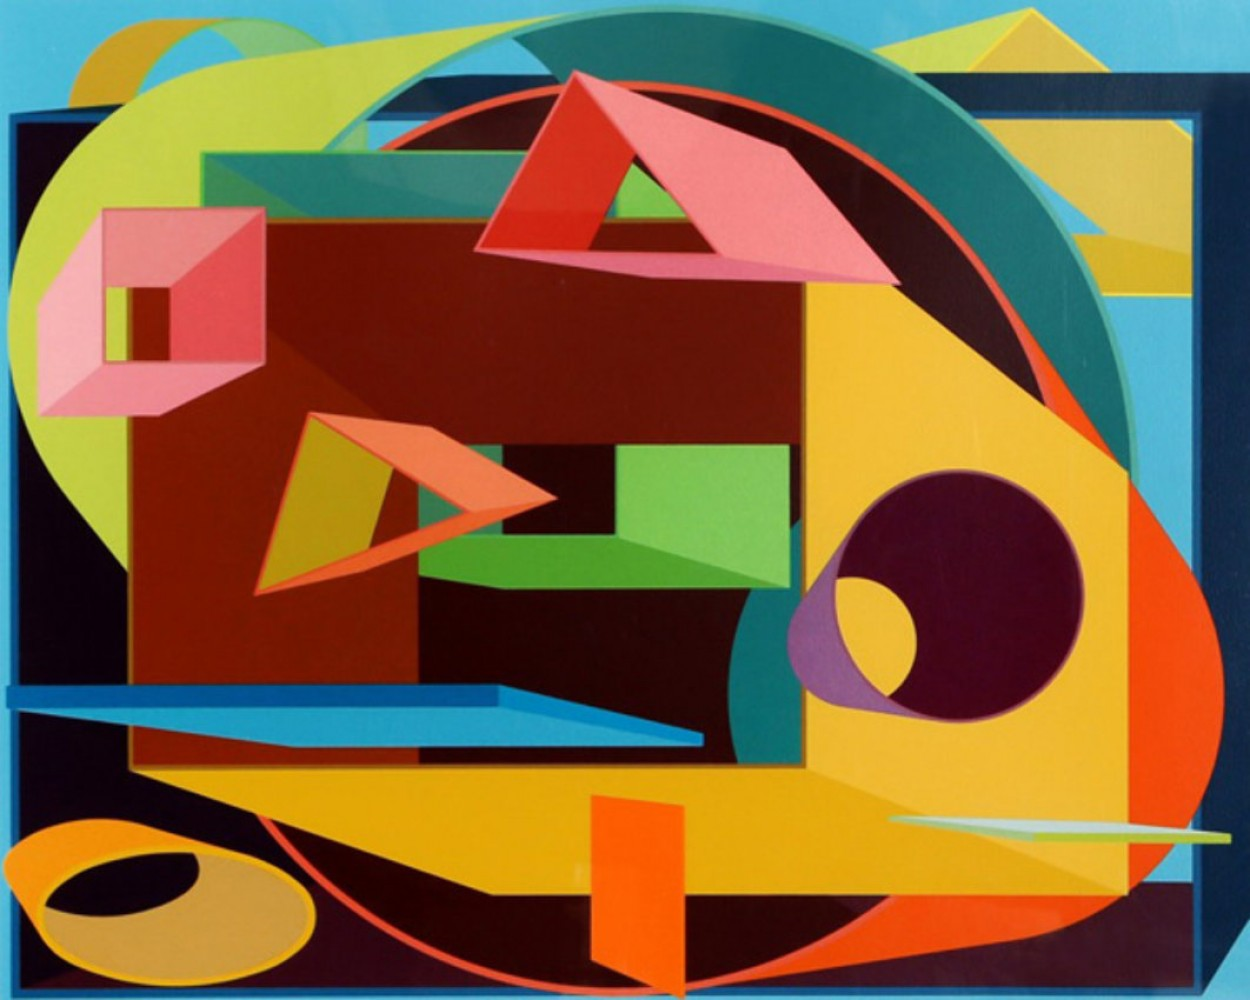 Scholes II 1991 by Al Held